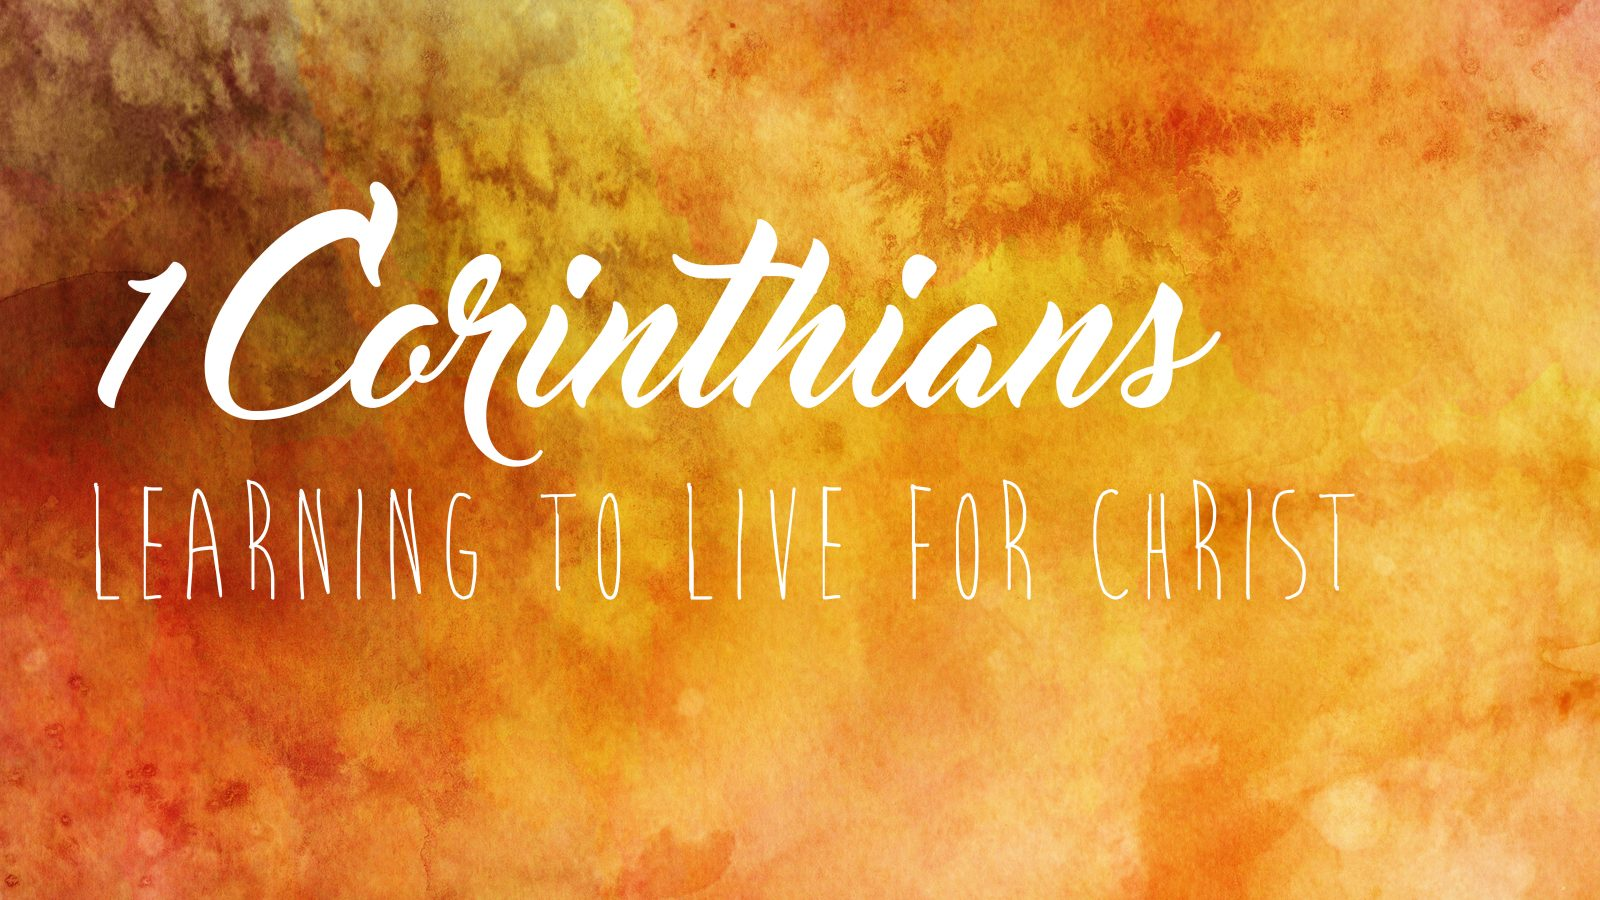 1 Corinthians 10: Don't let familiarity turn to contempt